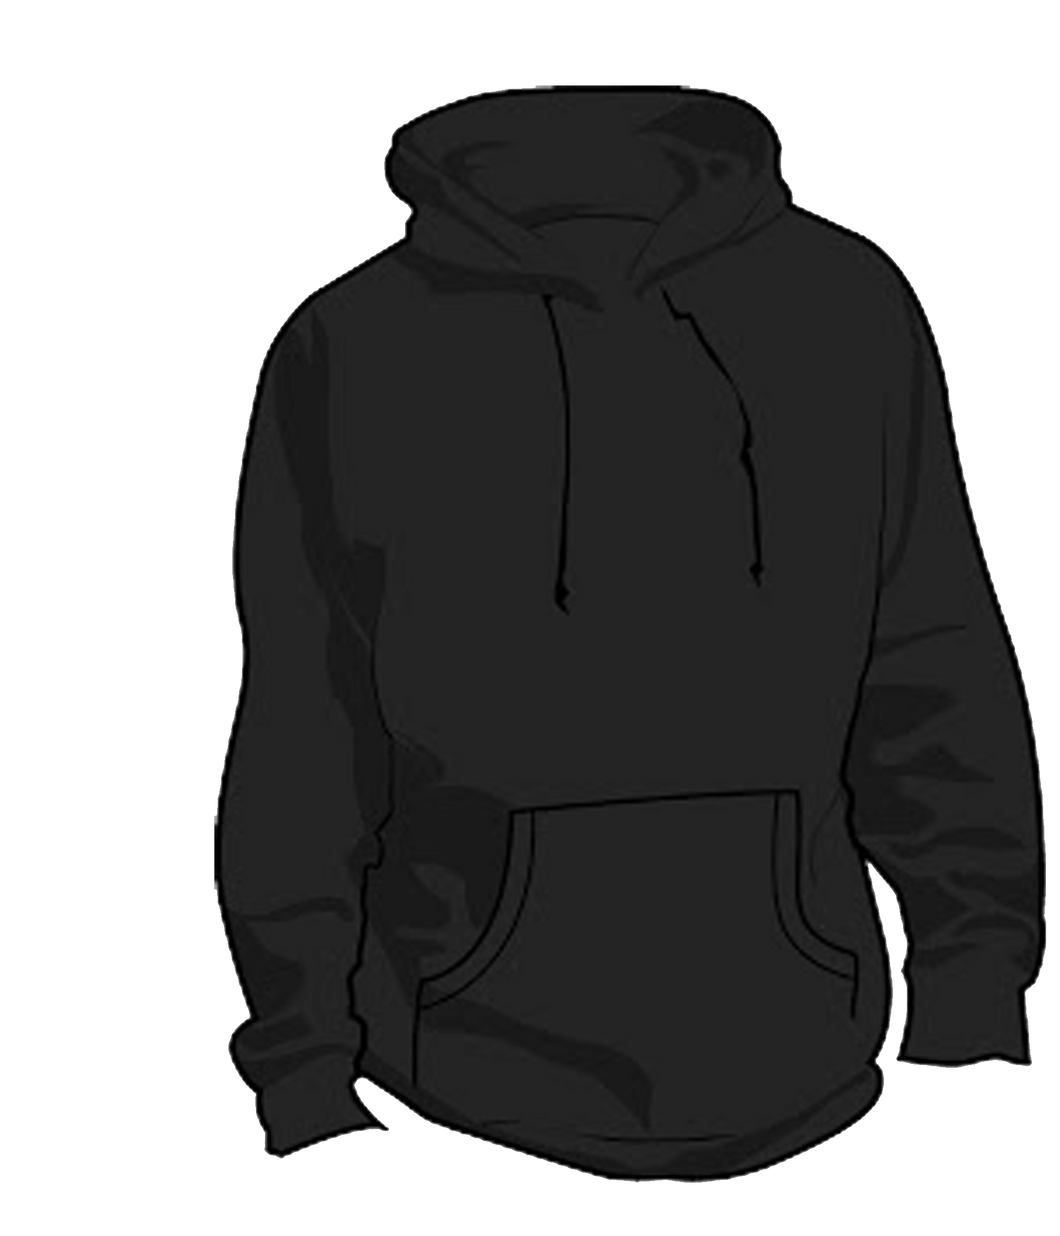 Customize Your Own Hoodie